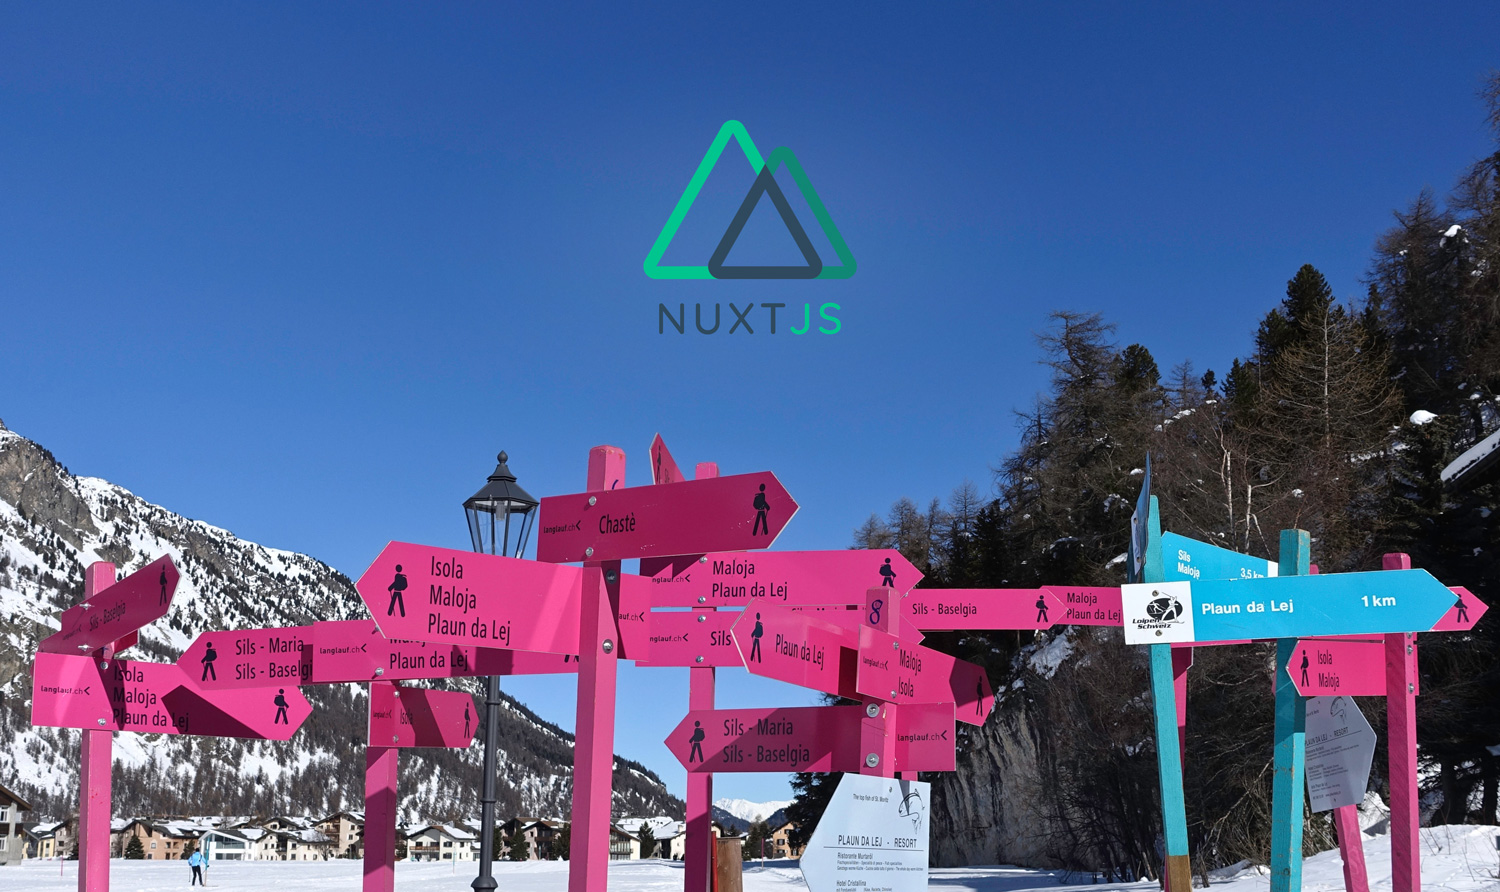 Creating Custom Directives in Nuxt.js